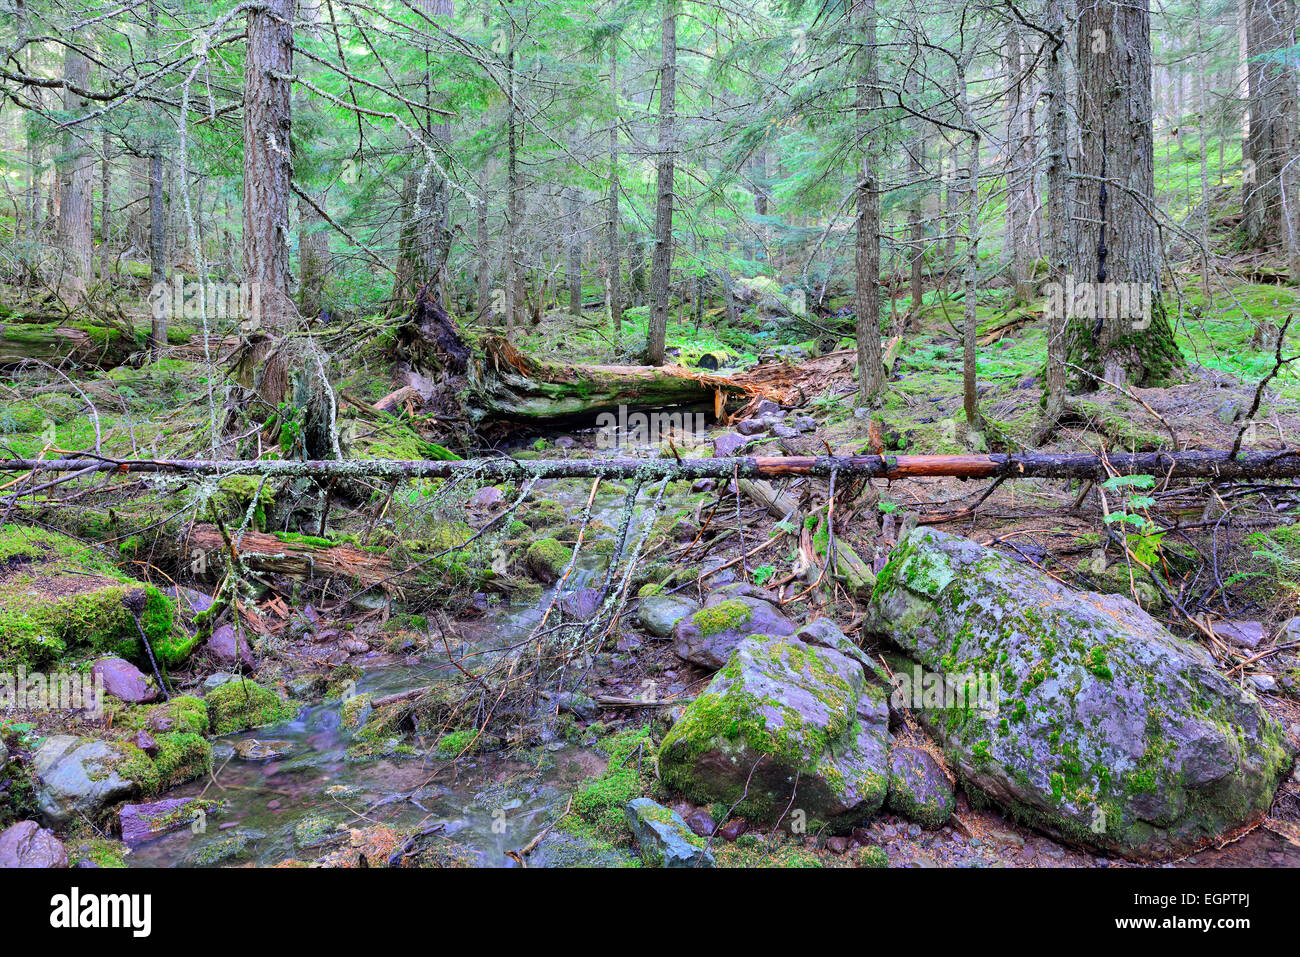 stream in the conifer forest on the Avalanche lake trail in Glacier National Park - Stock Image